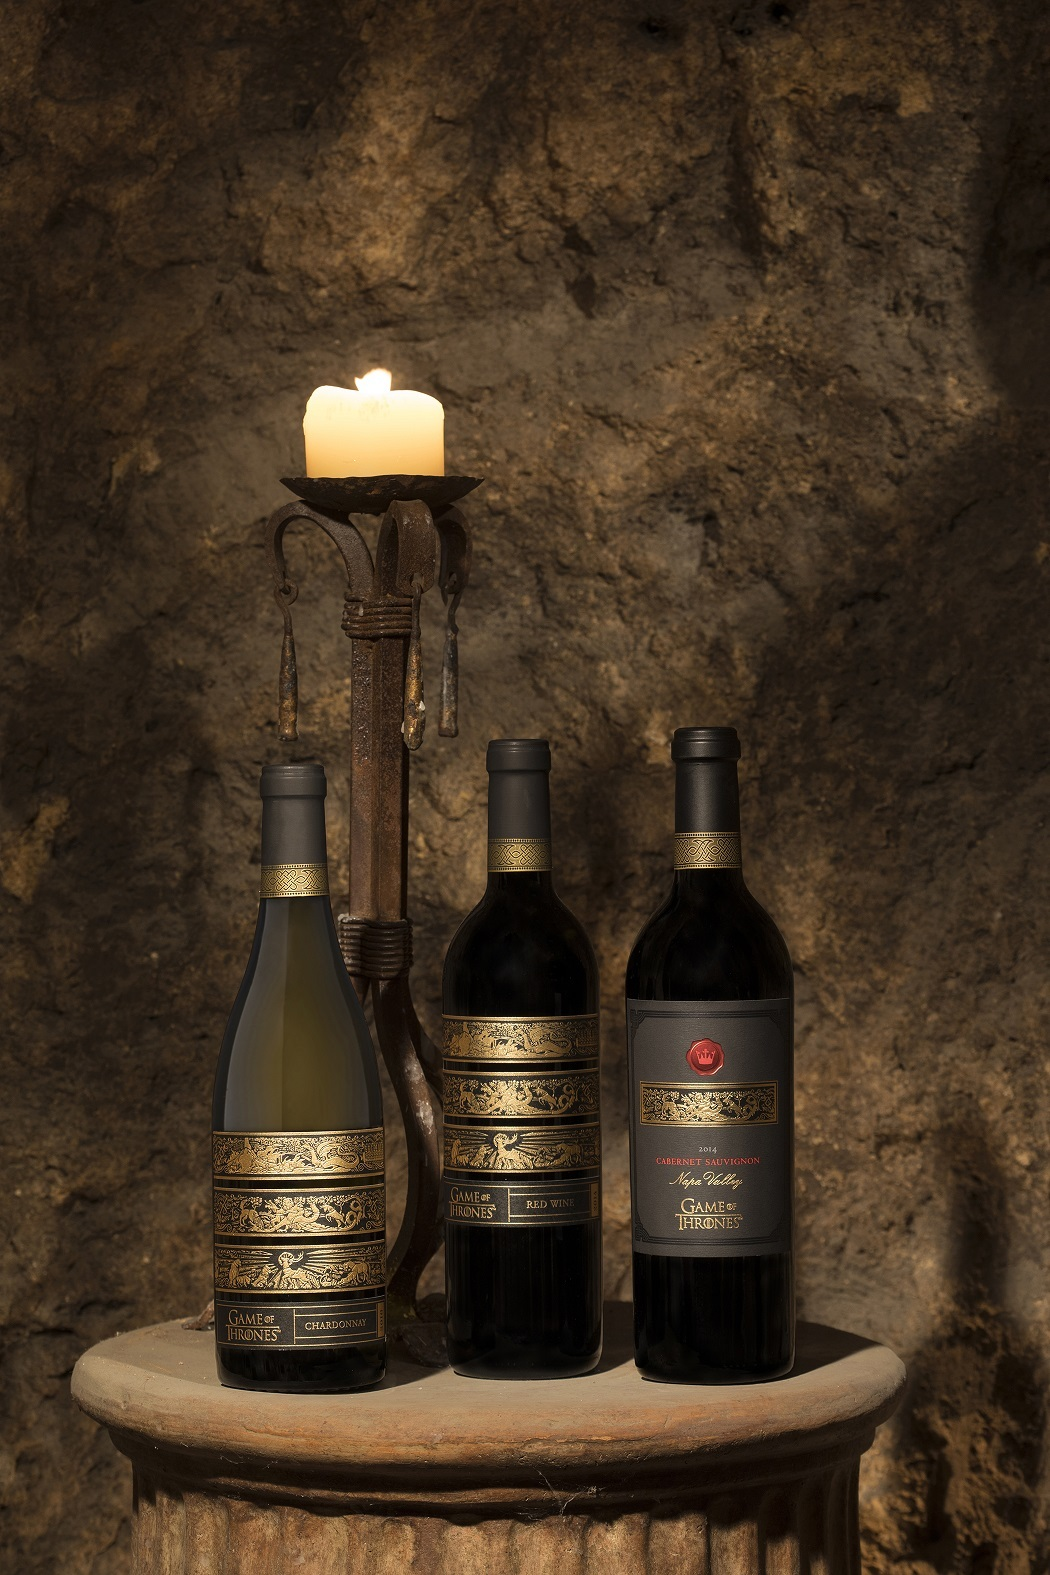 Game Of Thrones Wines Debut With Chardonnay Red Blend Cabernet Sauvignon Business Wire